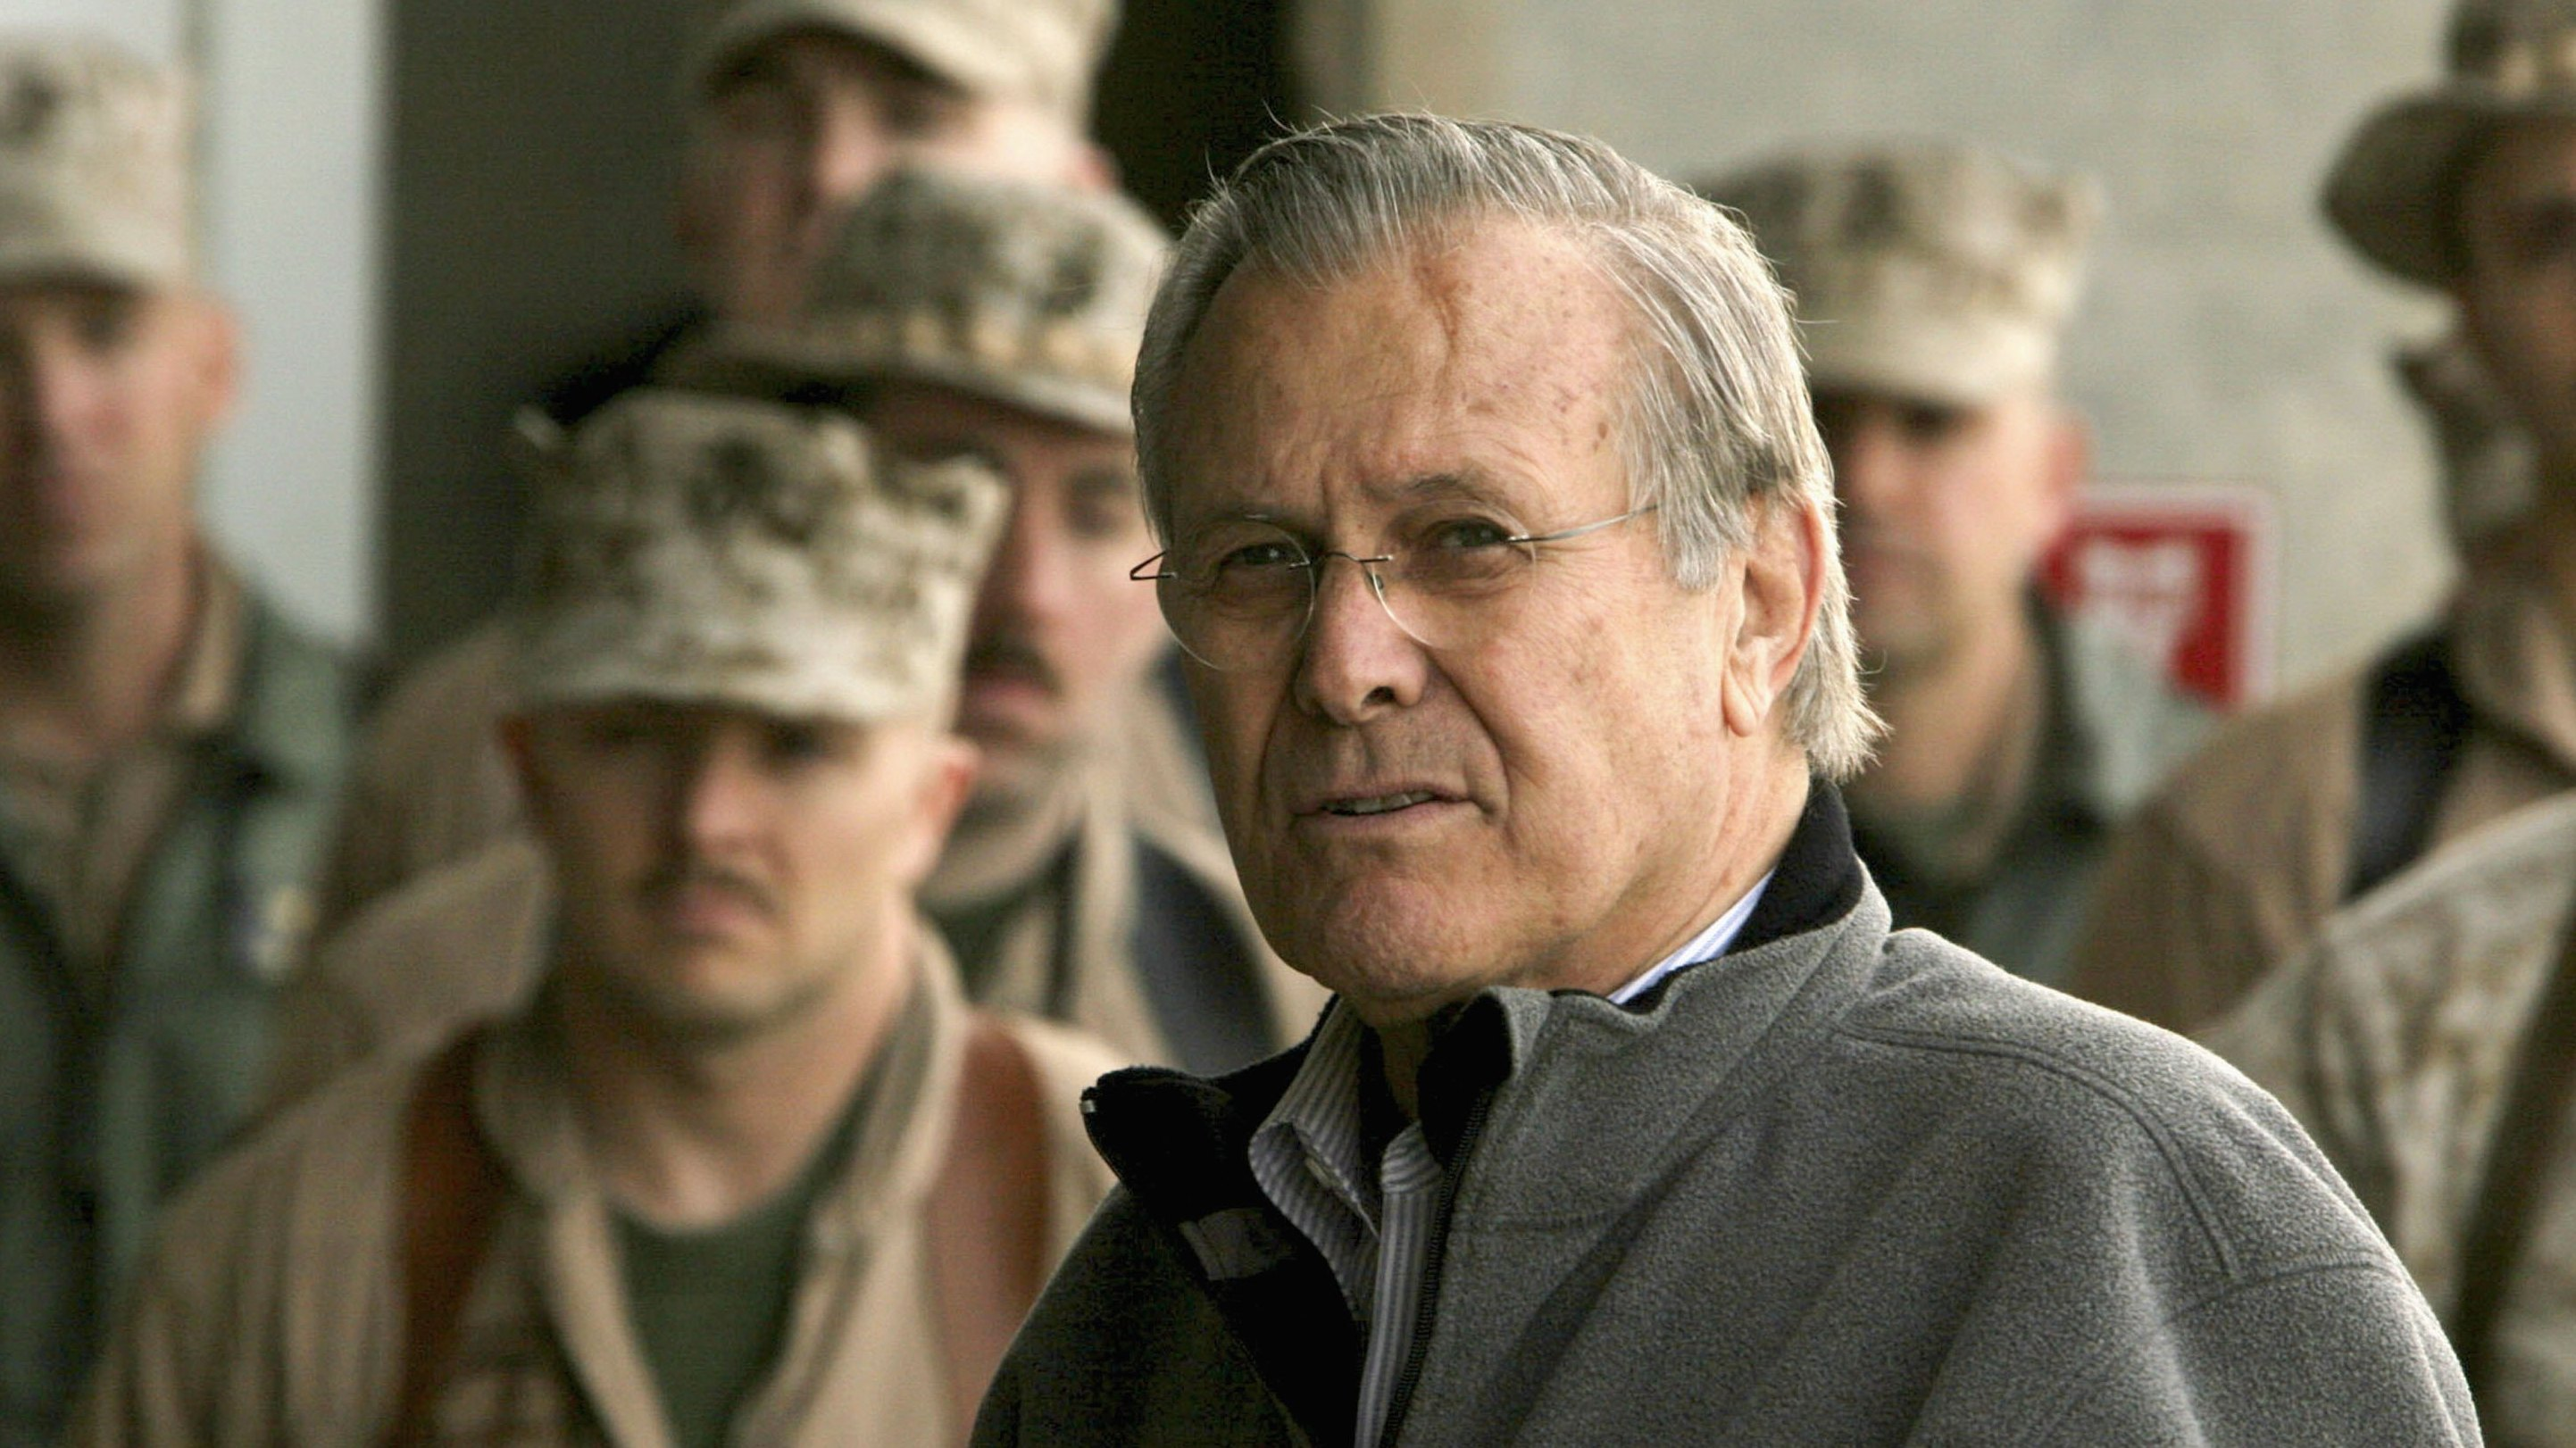 One Documentary Later, Rumsfeld's Inner World Remains 'Unknown'